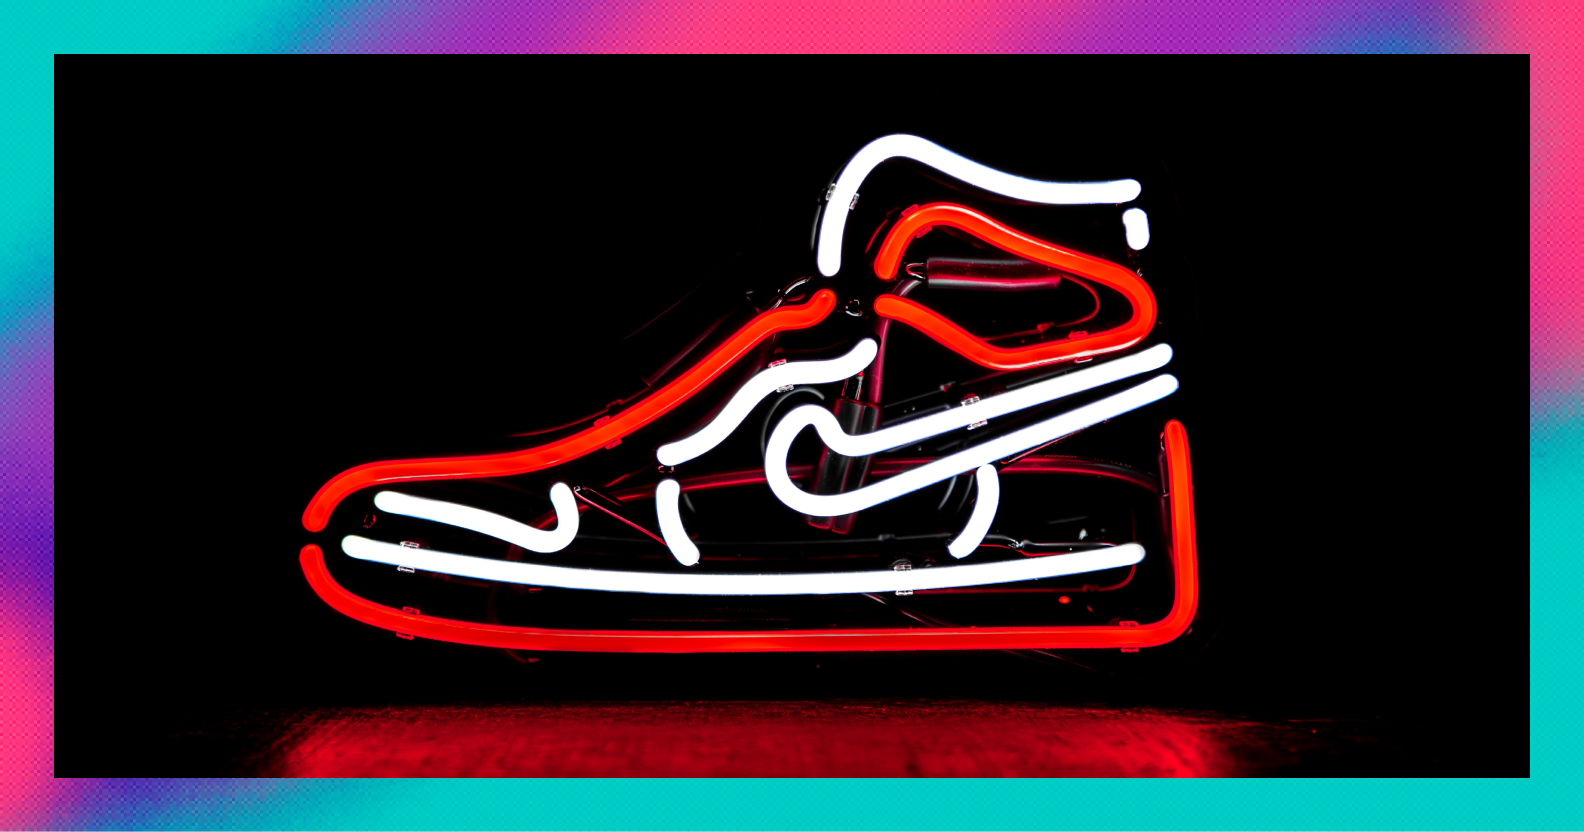 Is Nike's future growth already priced in?